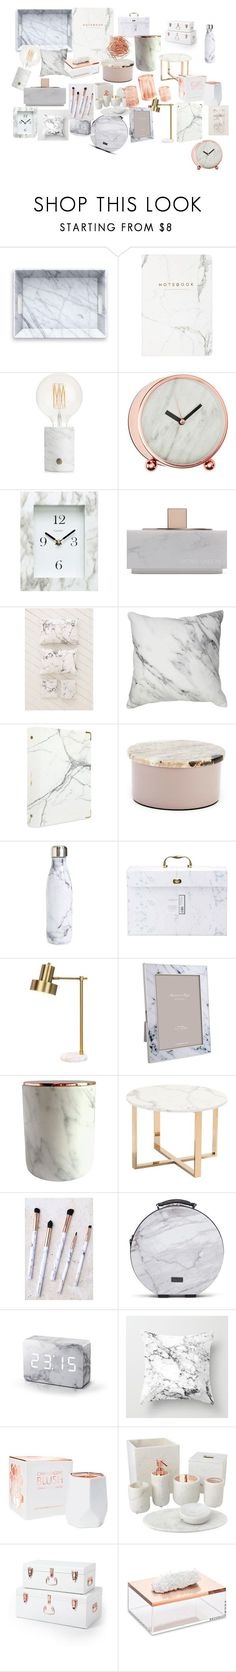 """marble rose gold"" by alilaforce on Polyvore featuring interior, interiors, interior design, home, home decor, interior decorating, A by Amara, Chaney, Native Union and Urban Outfitters"